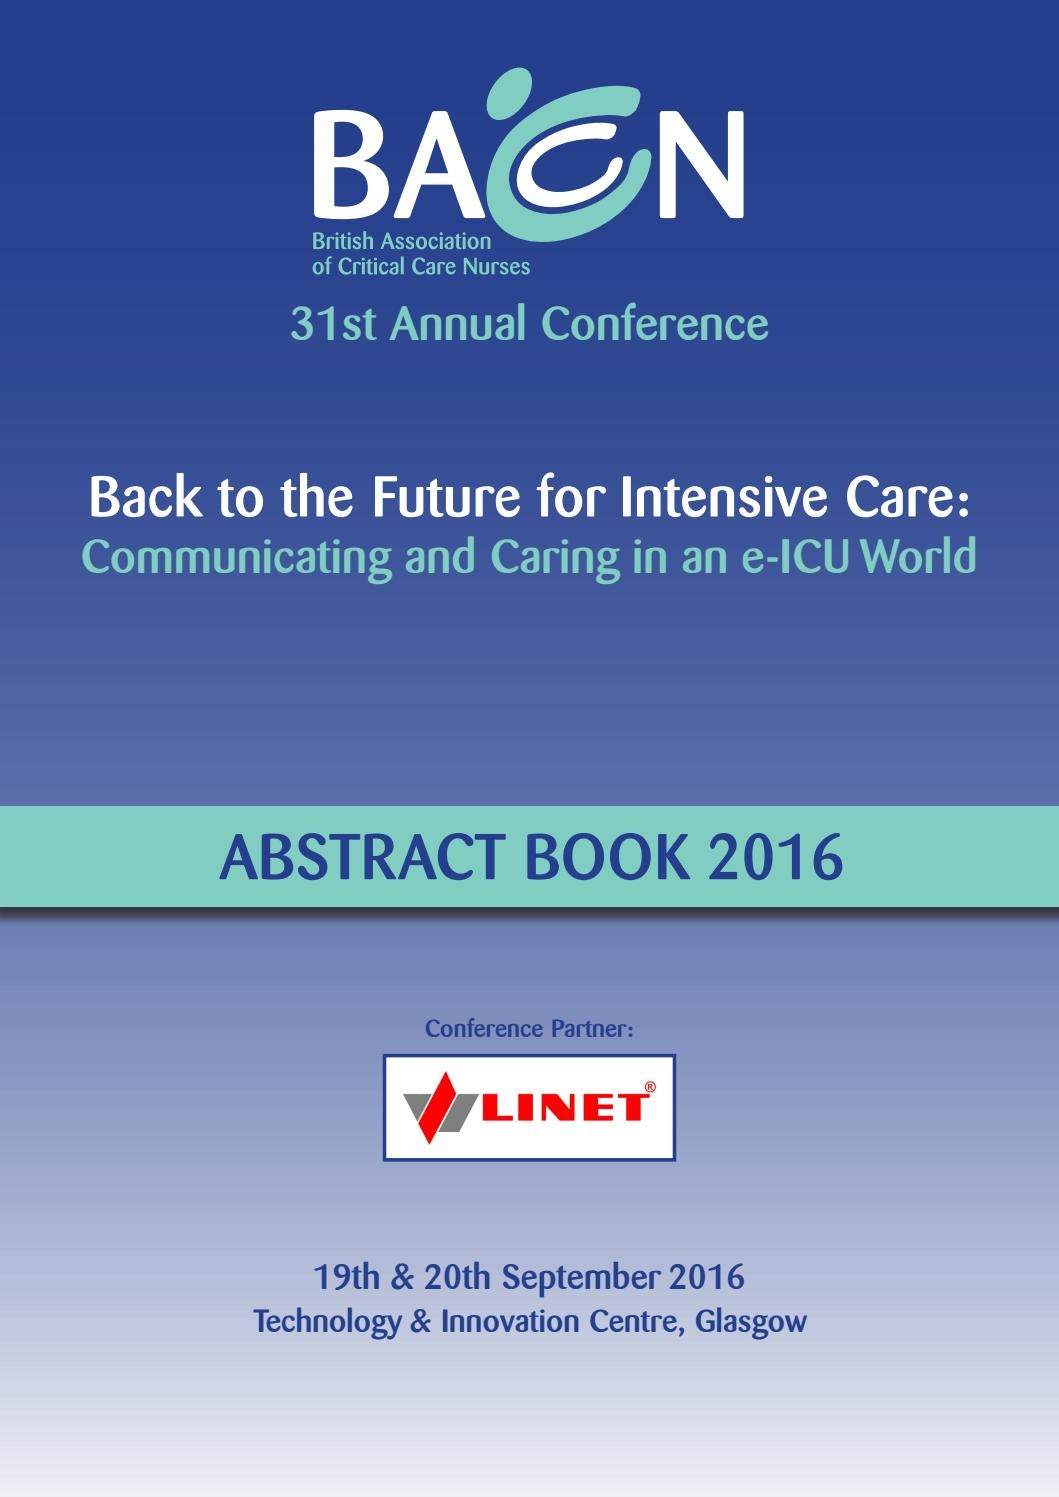 baccn conference 2016 abstract book by echo events issuu